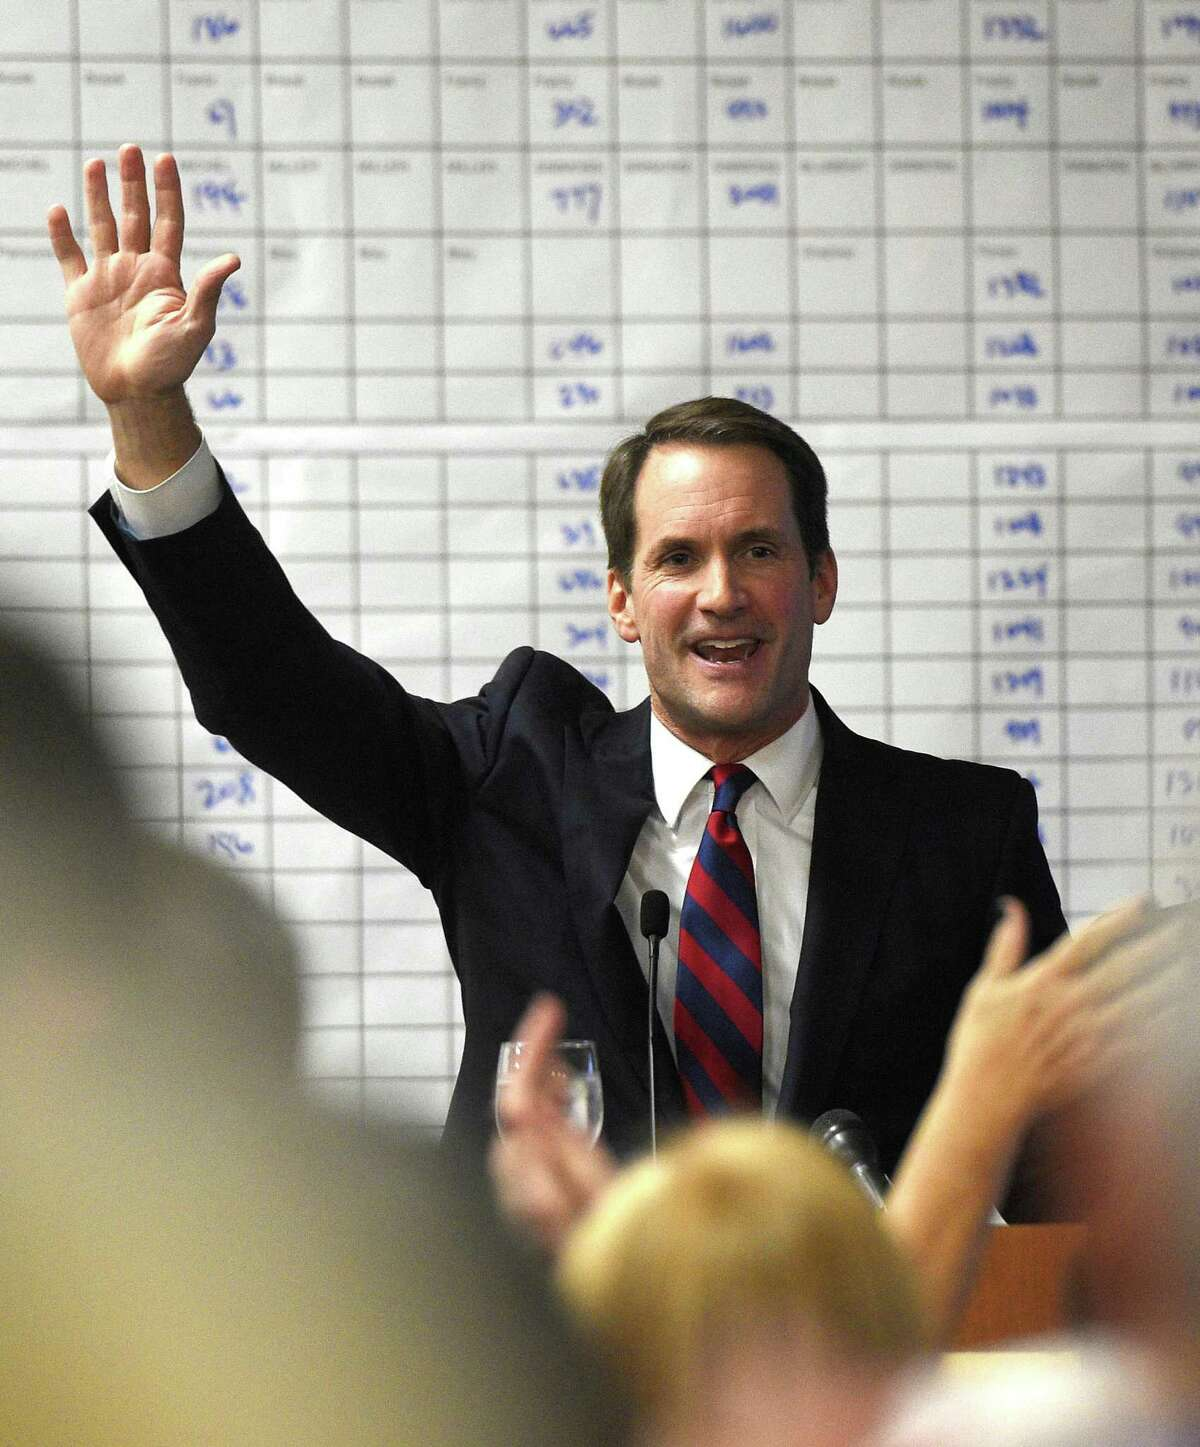 U.S. Rep. Jim Himes speaks during the Democratic Election Night Watch Party at the Sheraton Stamford Hotel in Stamford, Conn., Tuesday, Nov. 6, 2018. Incumbent Himes defeated Republican challenger Harry Arora in the battle for Connecticut's 4th Congressional District.